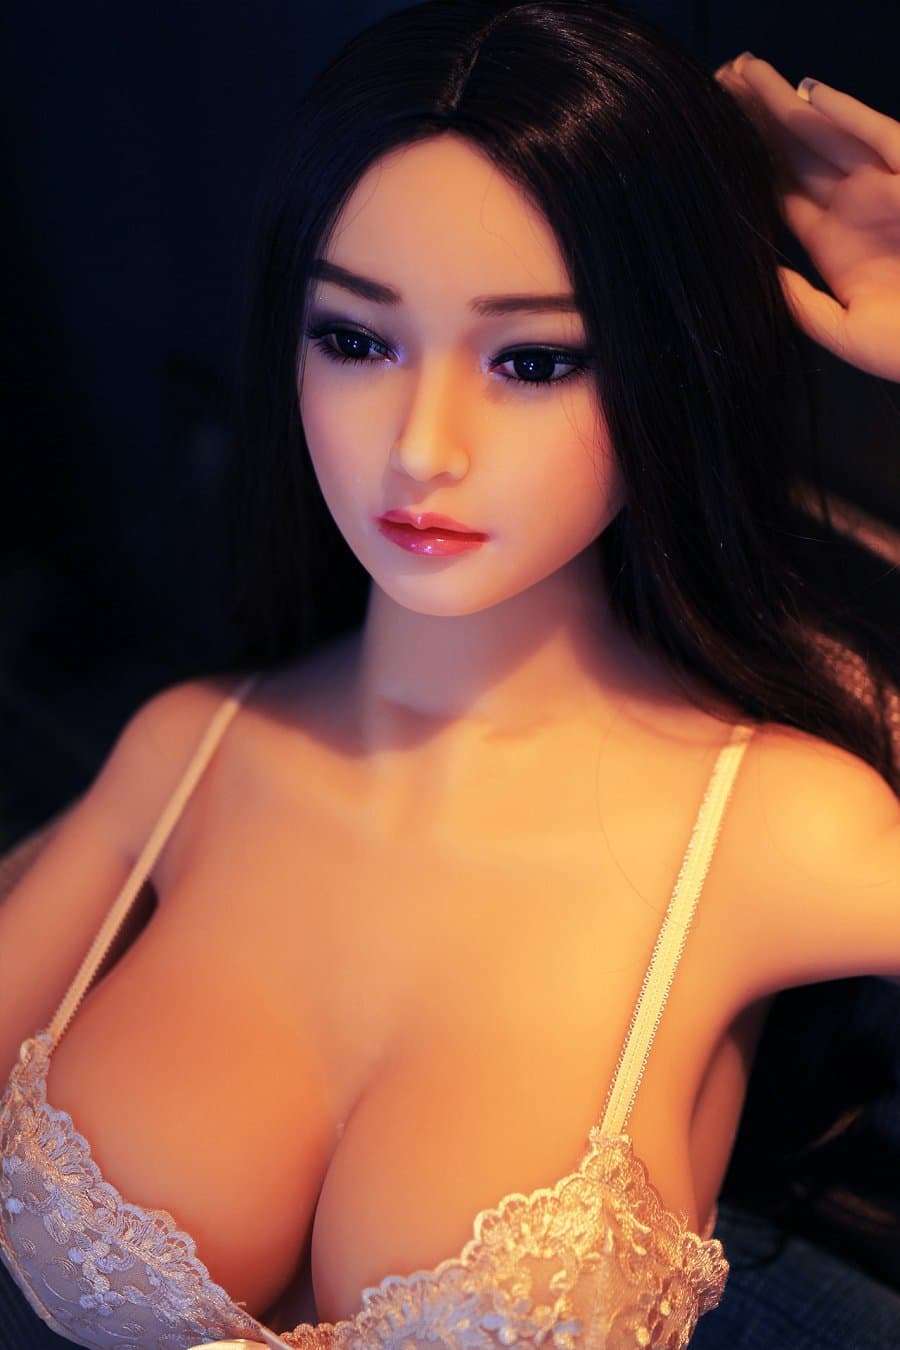 erica 165cm af black hair japanese big boobs skinny tpe asian sex doll(2)